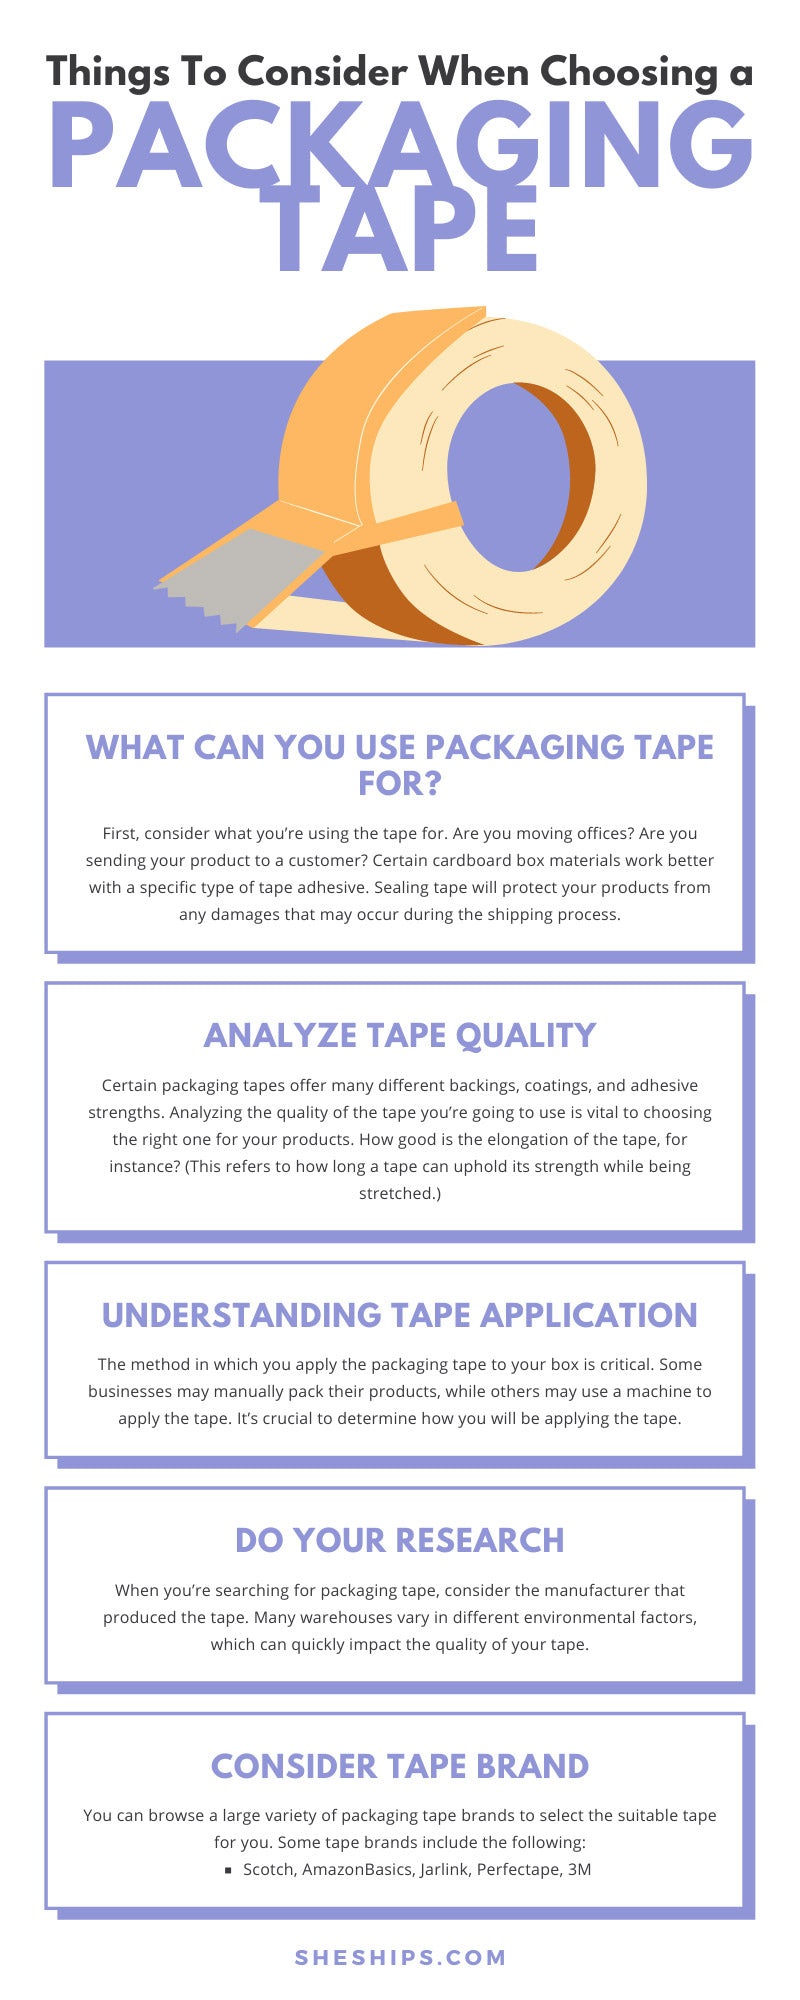 Things To Consider When Choosing a Packaging Tape